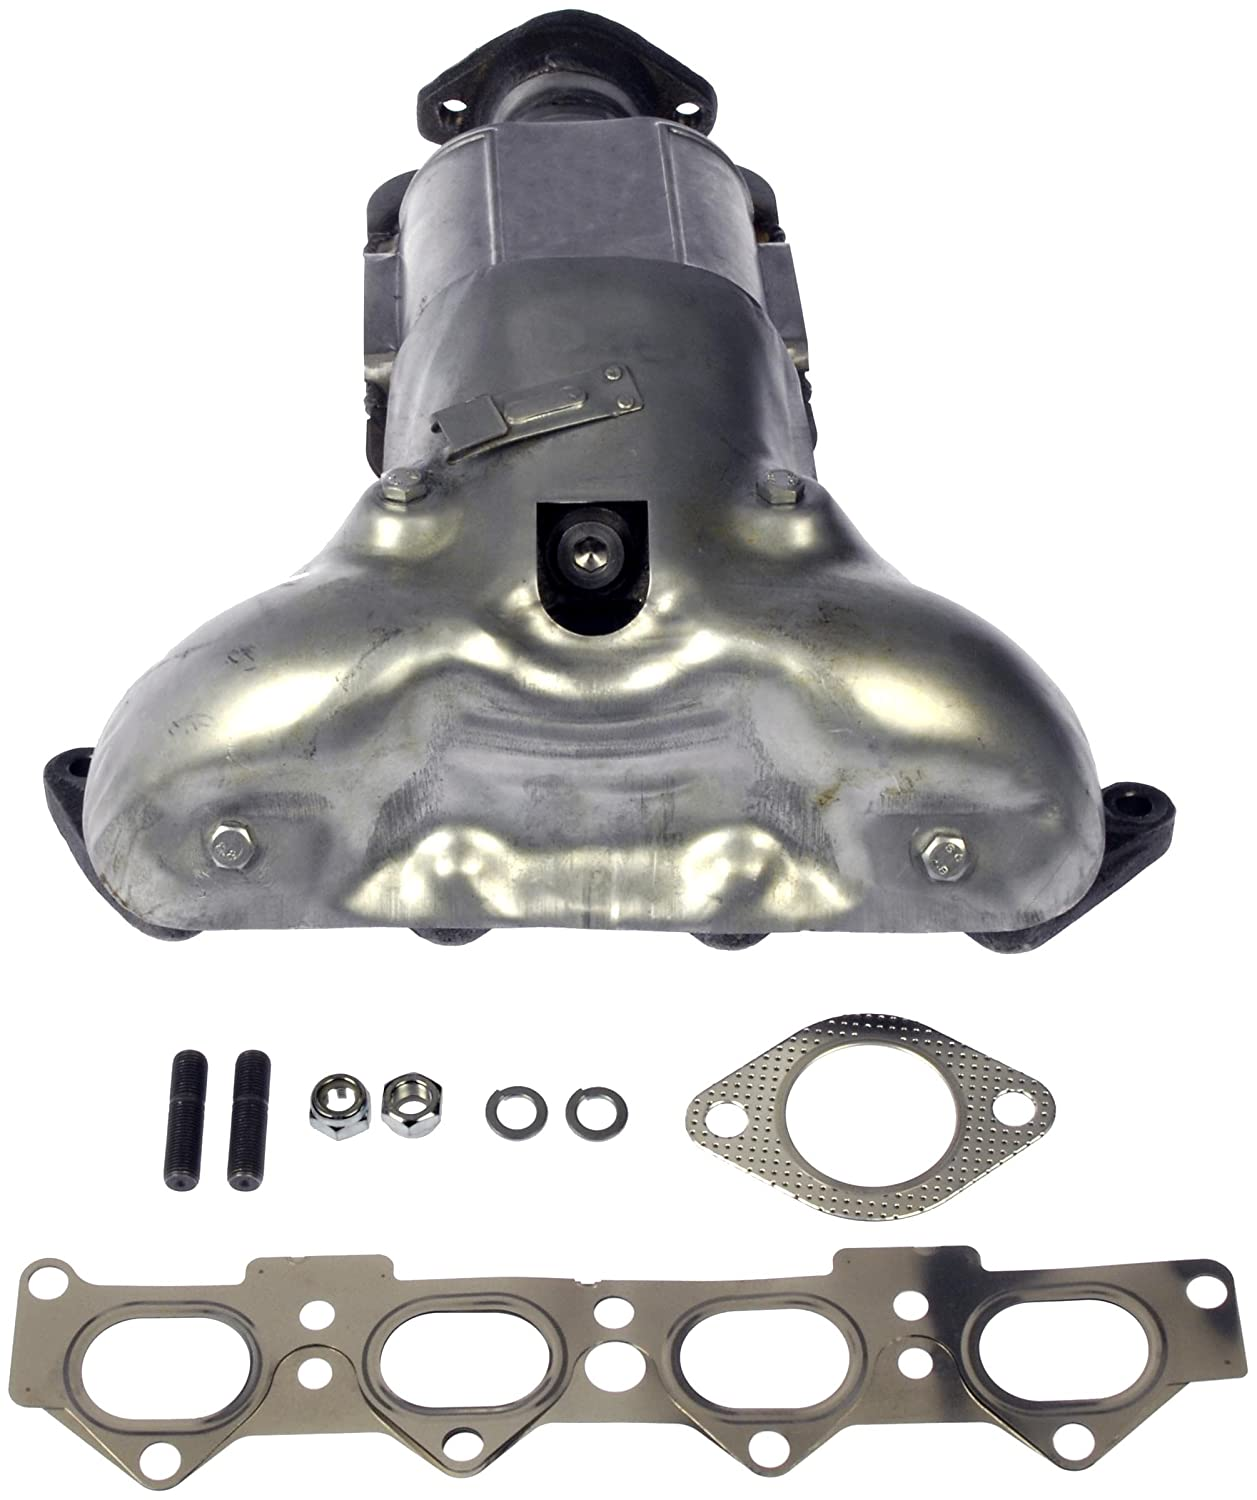 Non-CARB Compliant Dorman 674-980 Exhaust Manifold with Integrated  Catalytic Converter